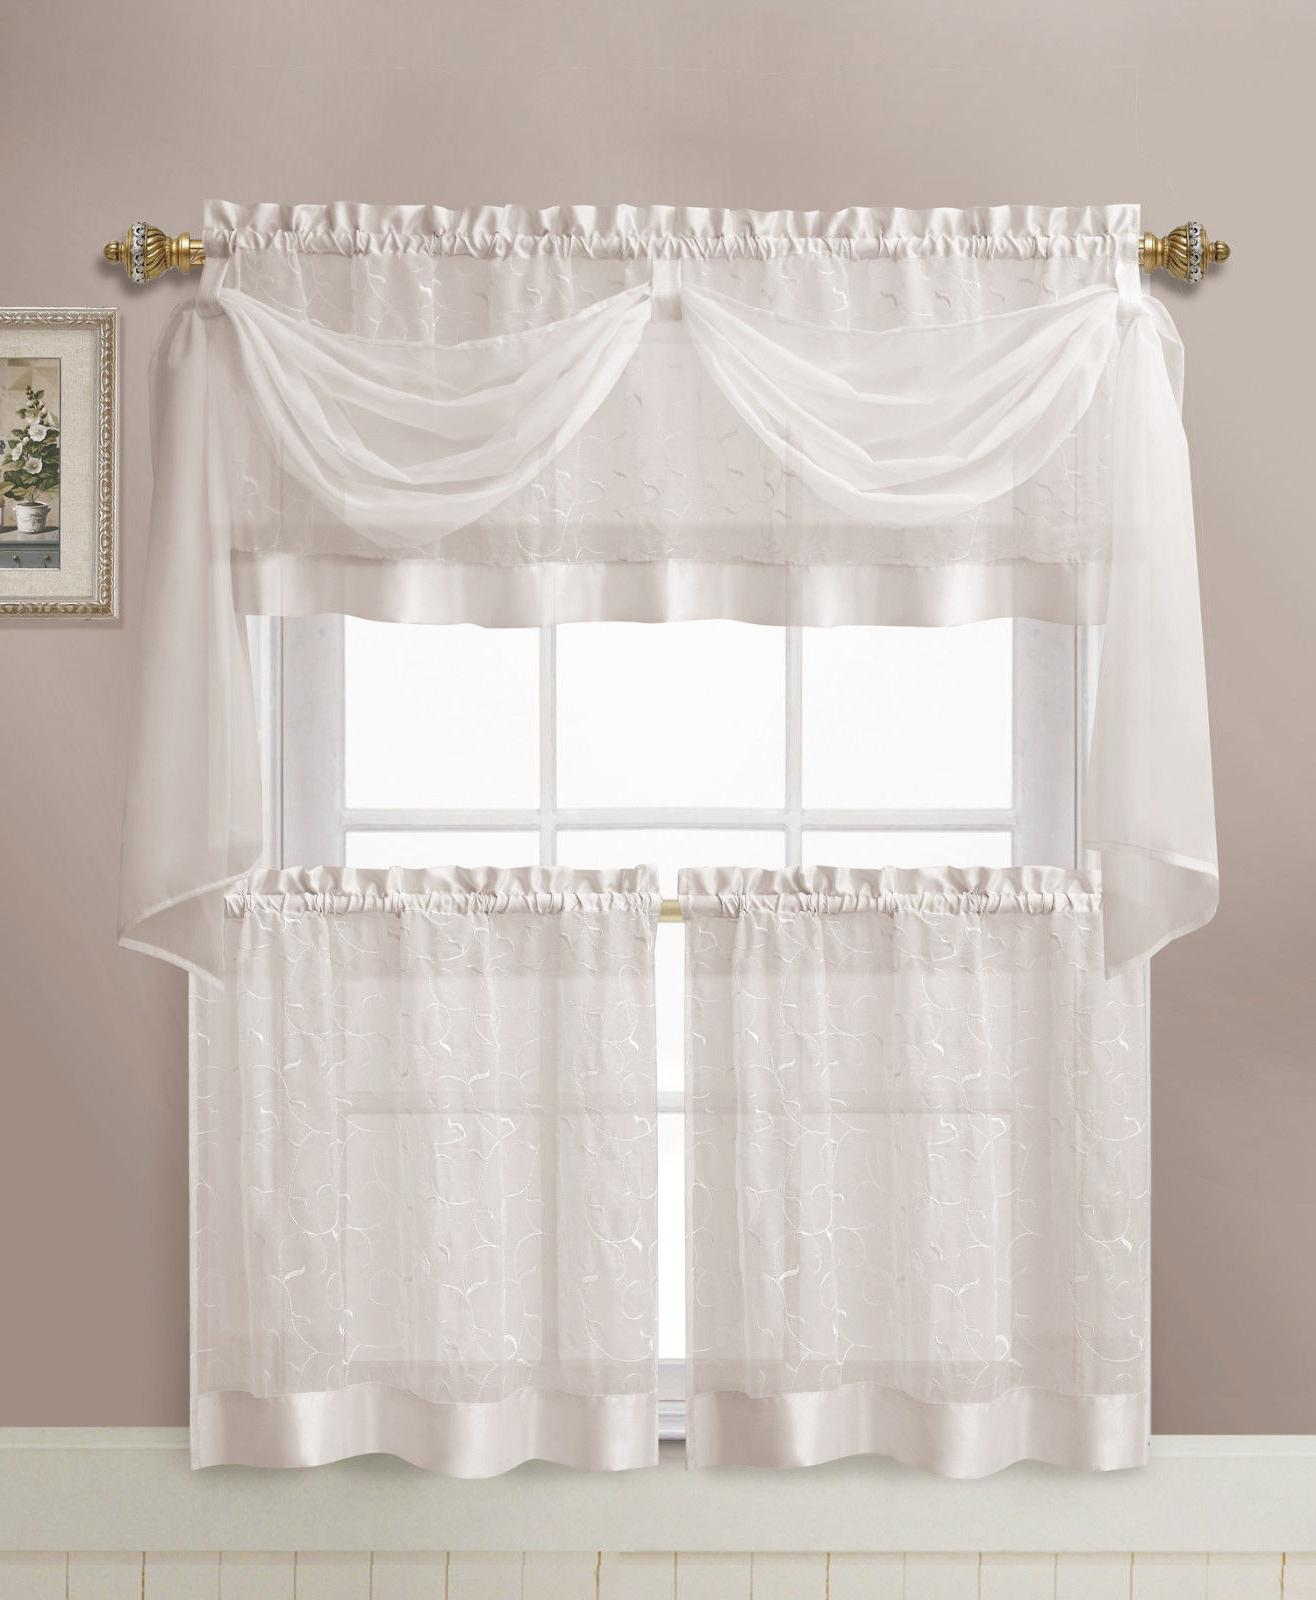 VCNY Home Linen Embroidered Complete Curtain Set - Assorted Colors